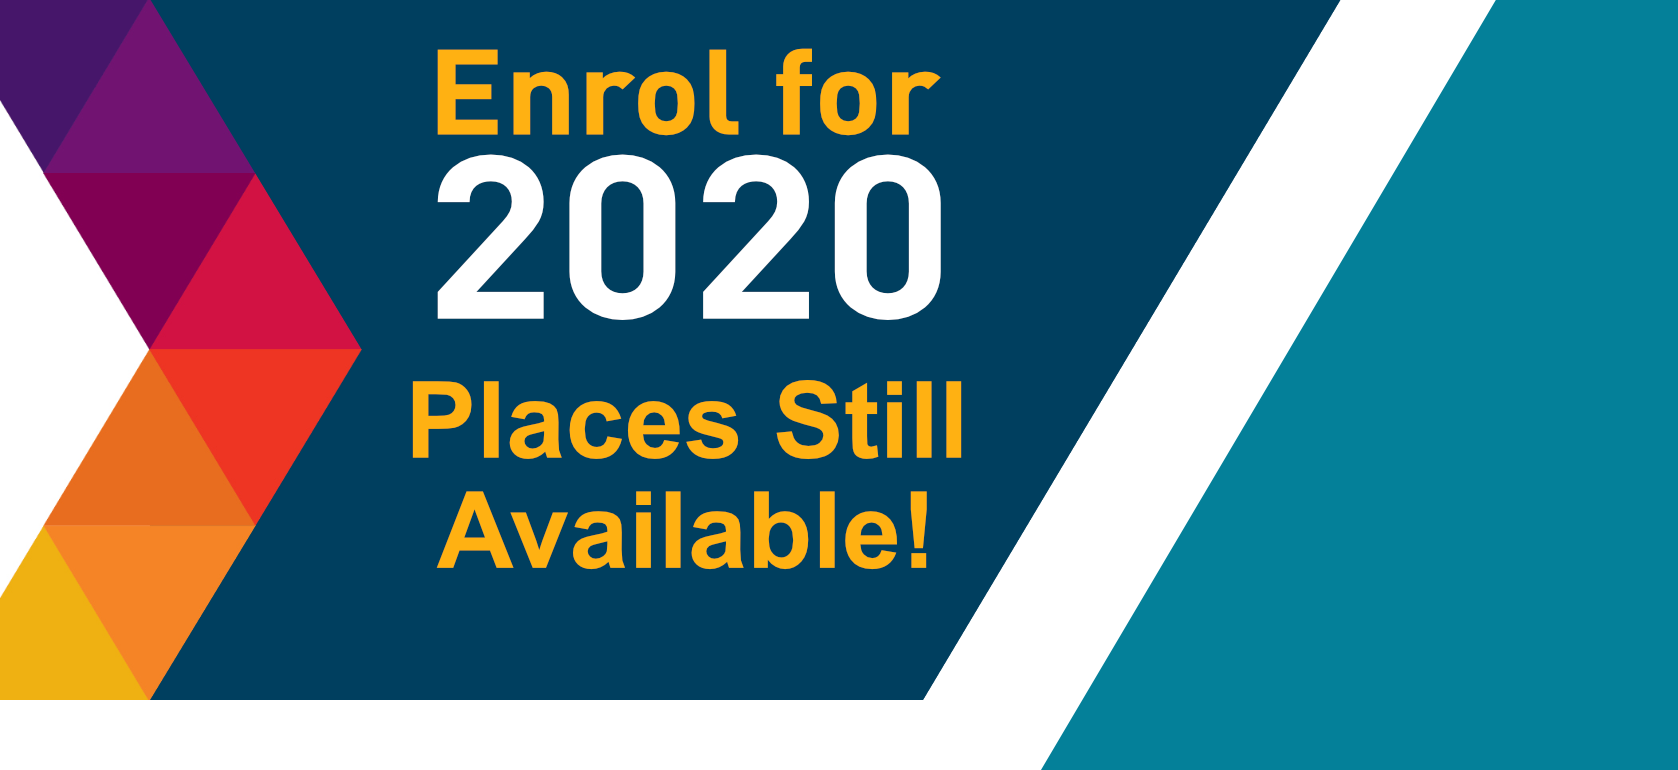 Enrol for September 2020 - Places still available!